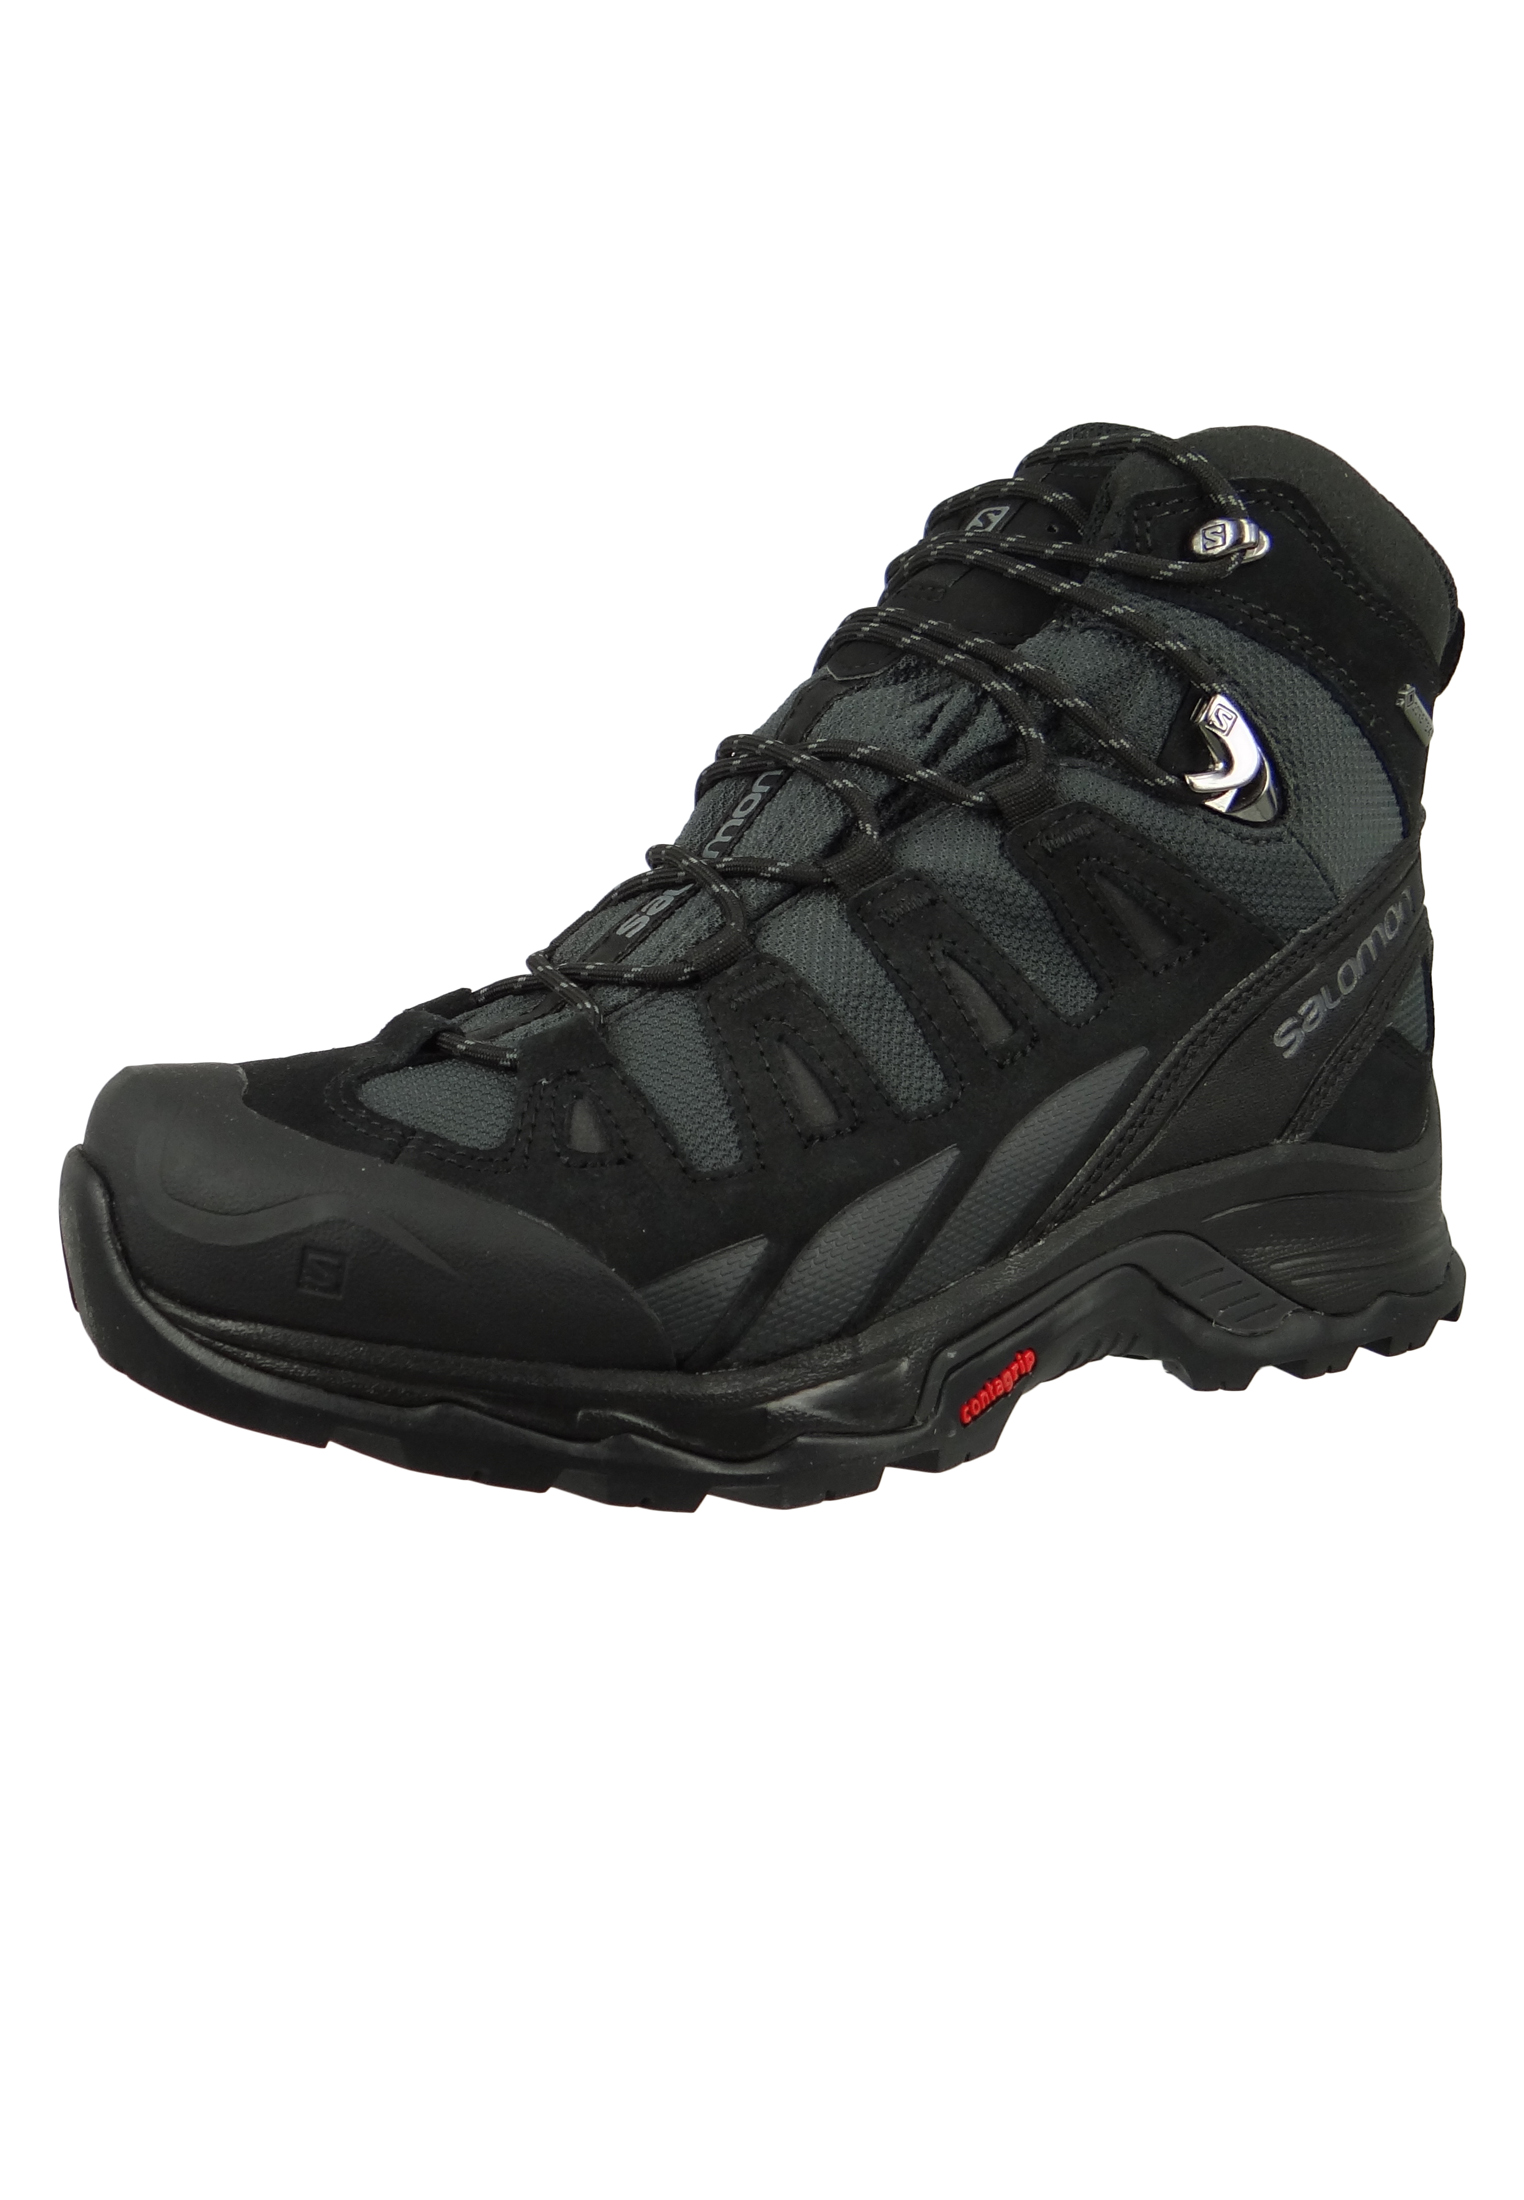 Salomon Schuhe Wanderschuhe Quest Prime GTX® 404637 Schwarz Phantom Black Quiet Shade